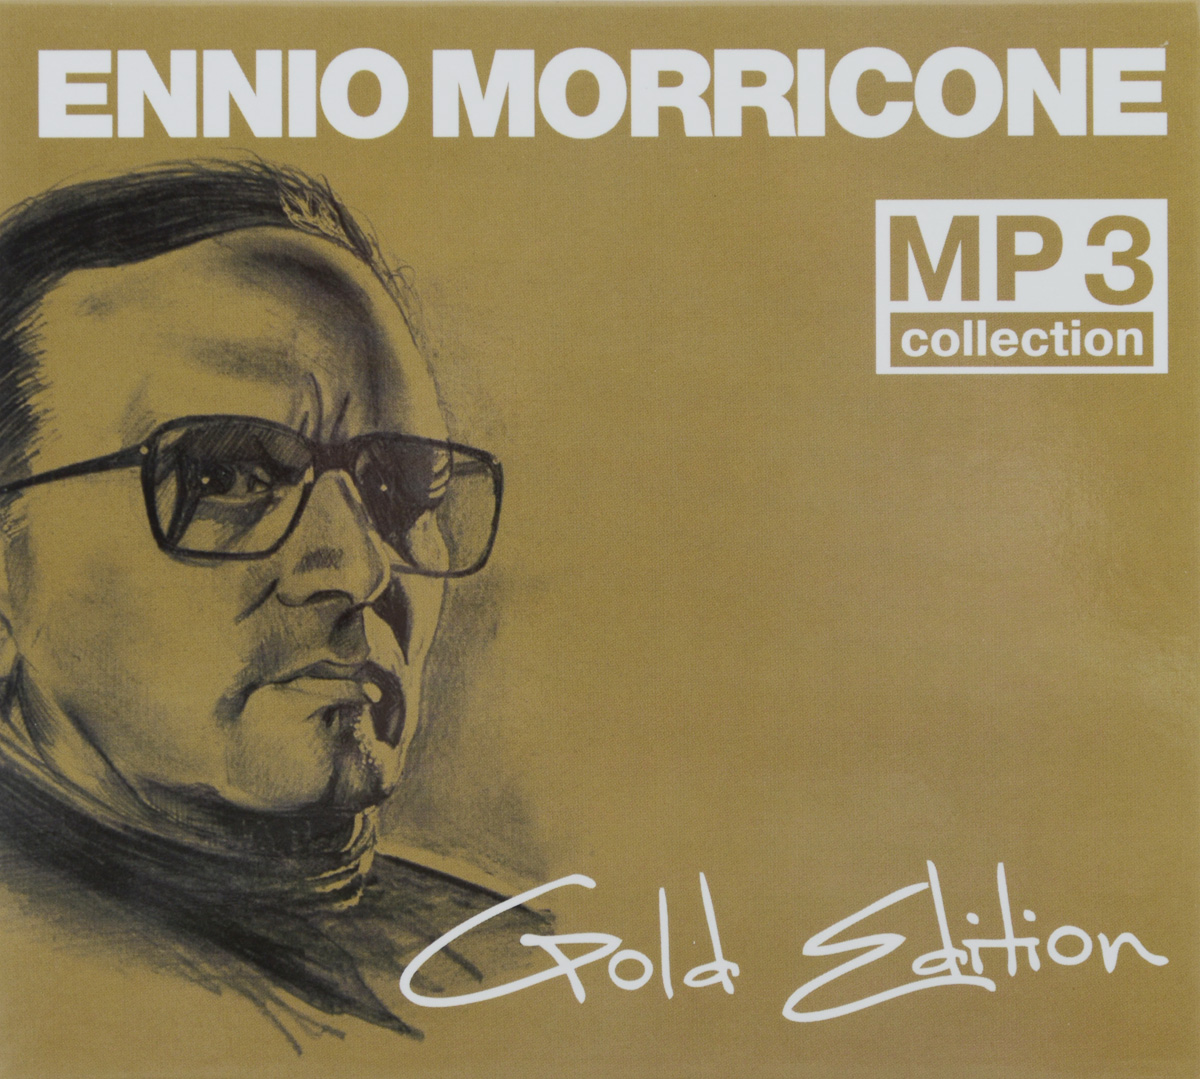 Эннио Морриконе,Il Novecento,Maddalena,Mosca Addio,La Cugina Ennio Morricone. MP3 Collection. Gold Edition (mp3) эннио морриконе ennio morricone la notte e il momento lp